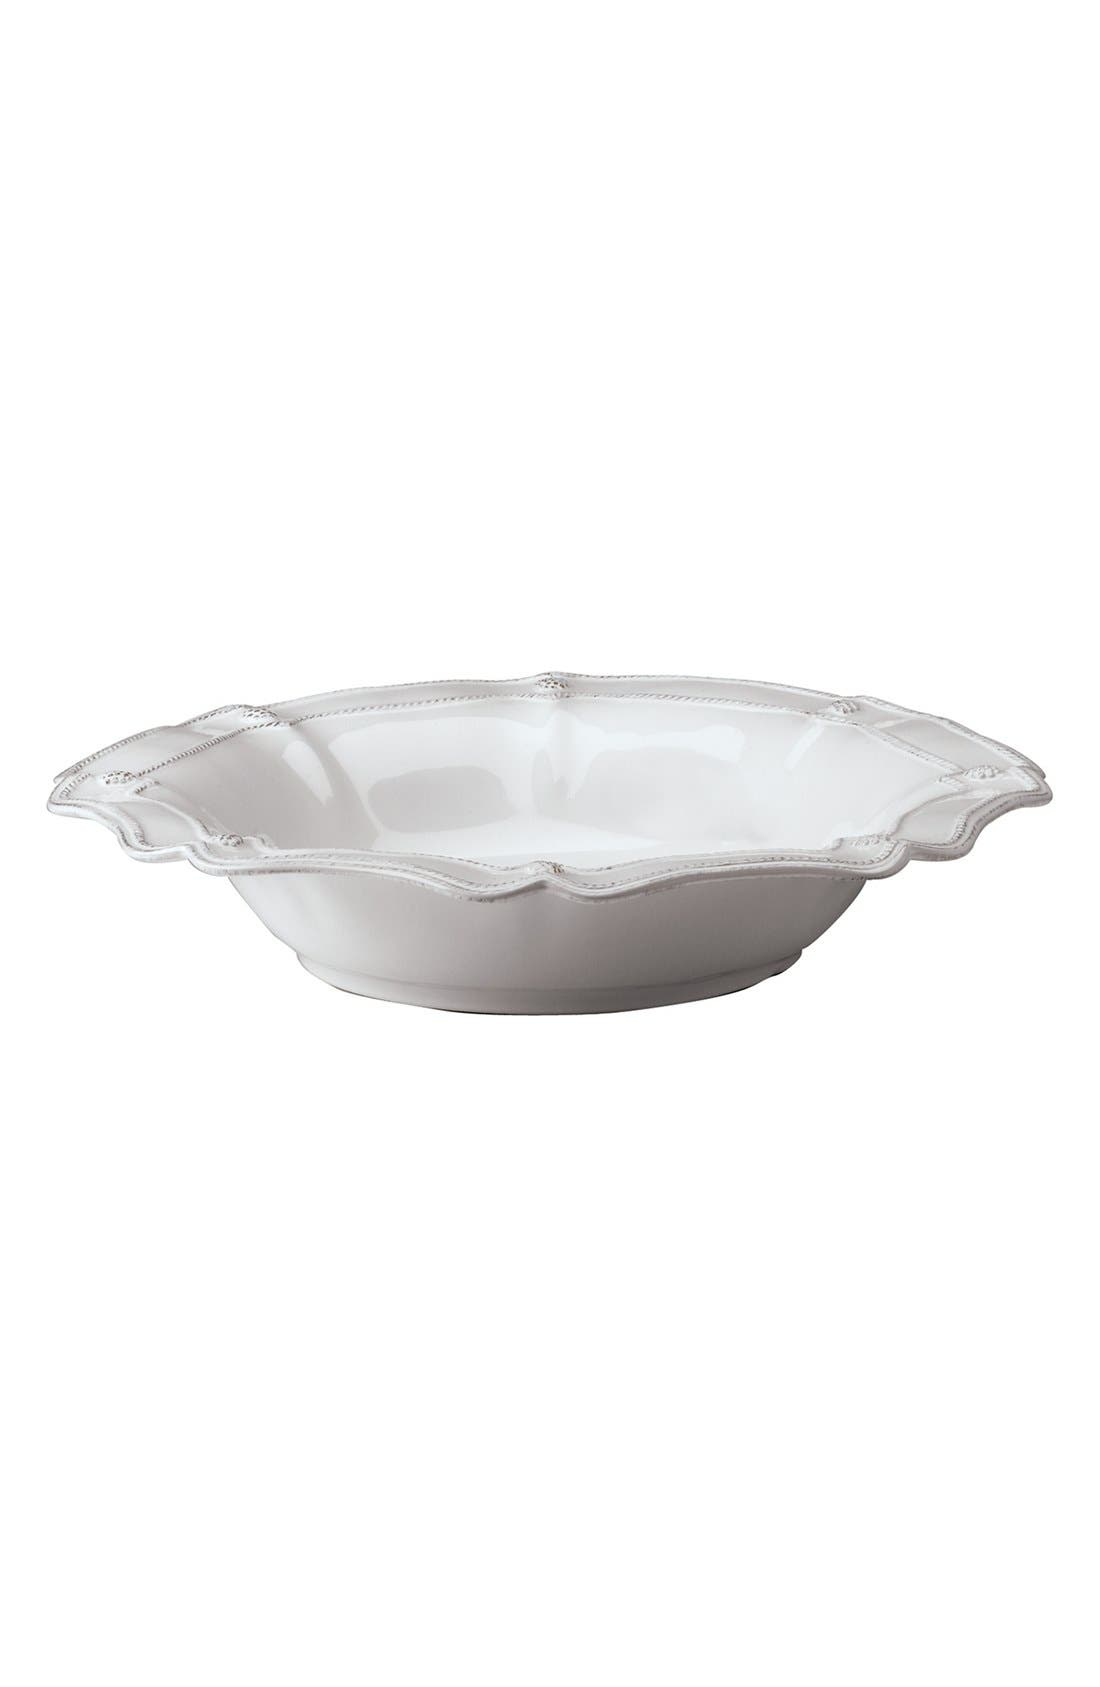 Alternate Image 1 Selected - Juliska 'Berry and Thread' Ceramic Serving Bowl